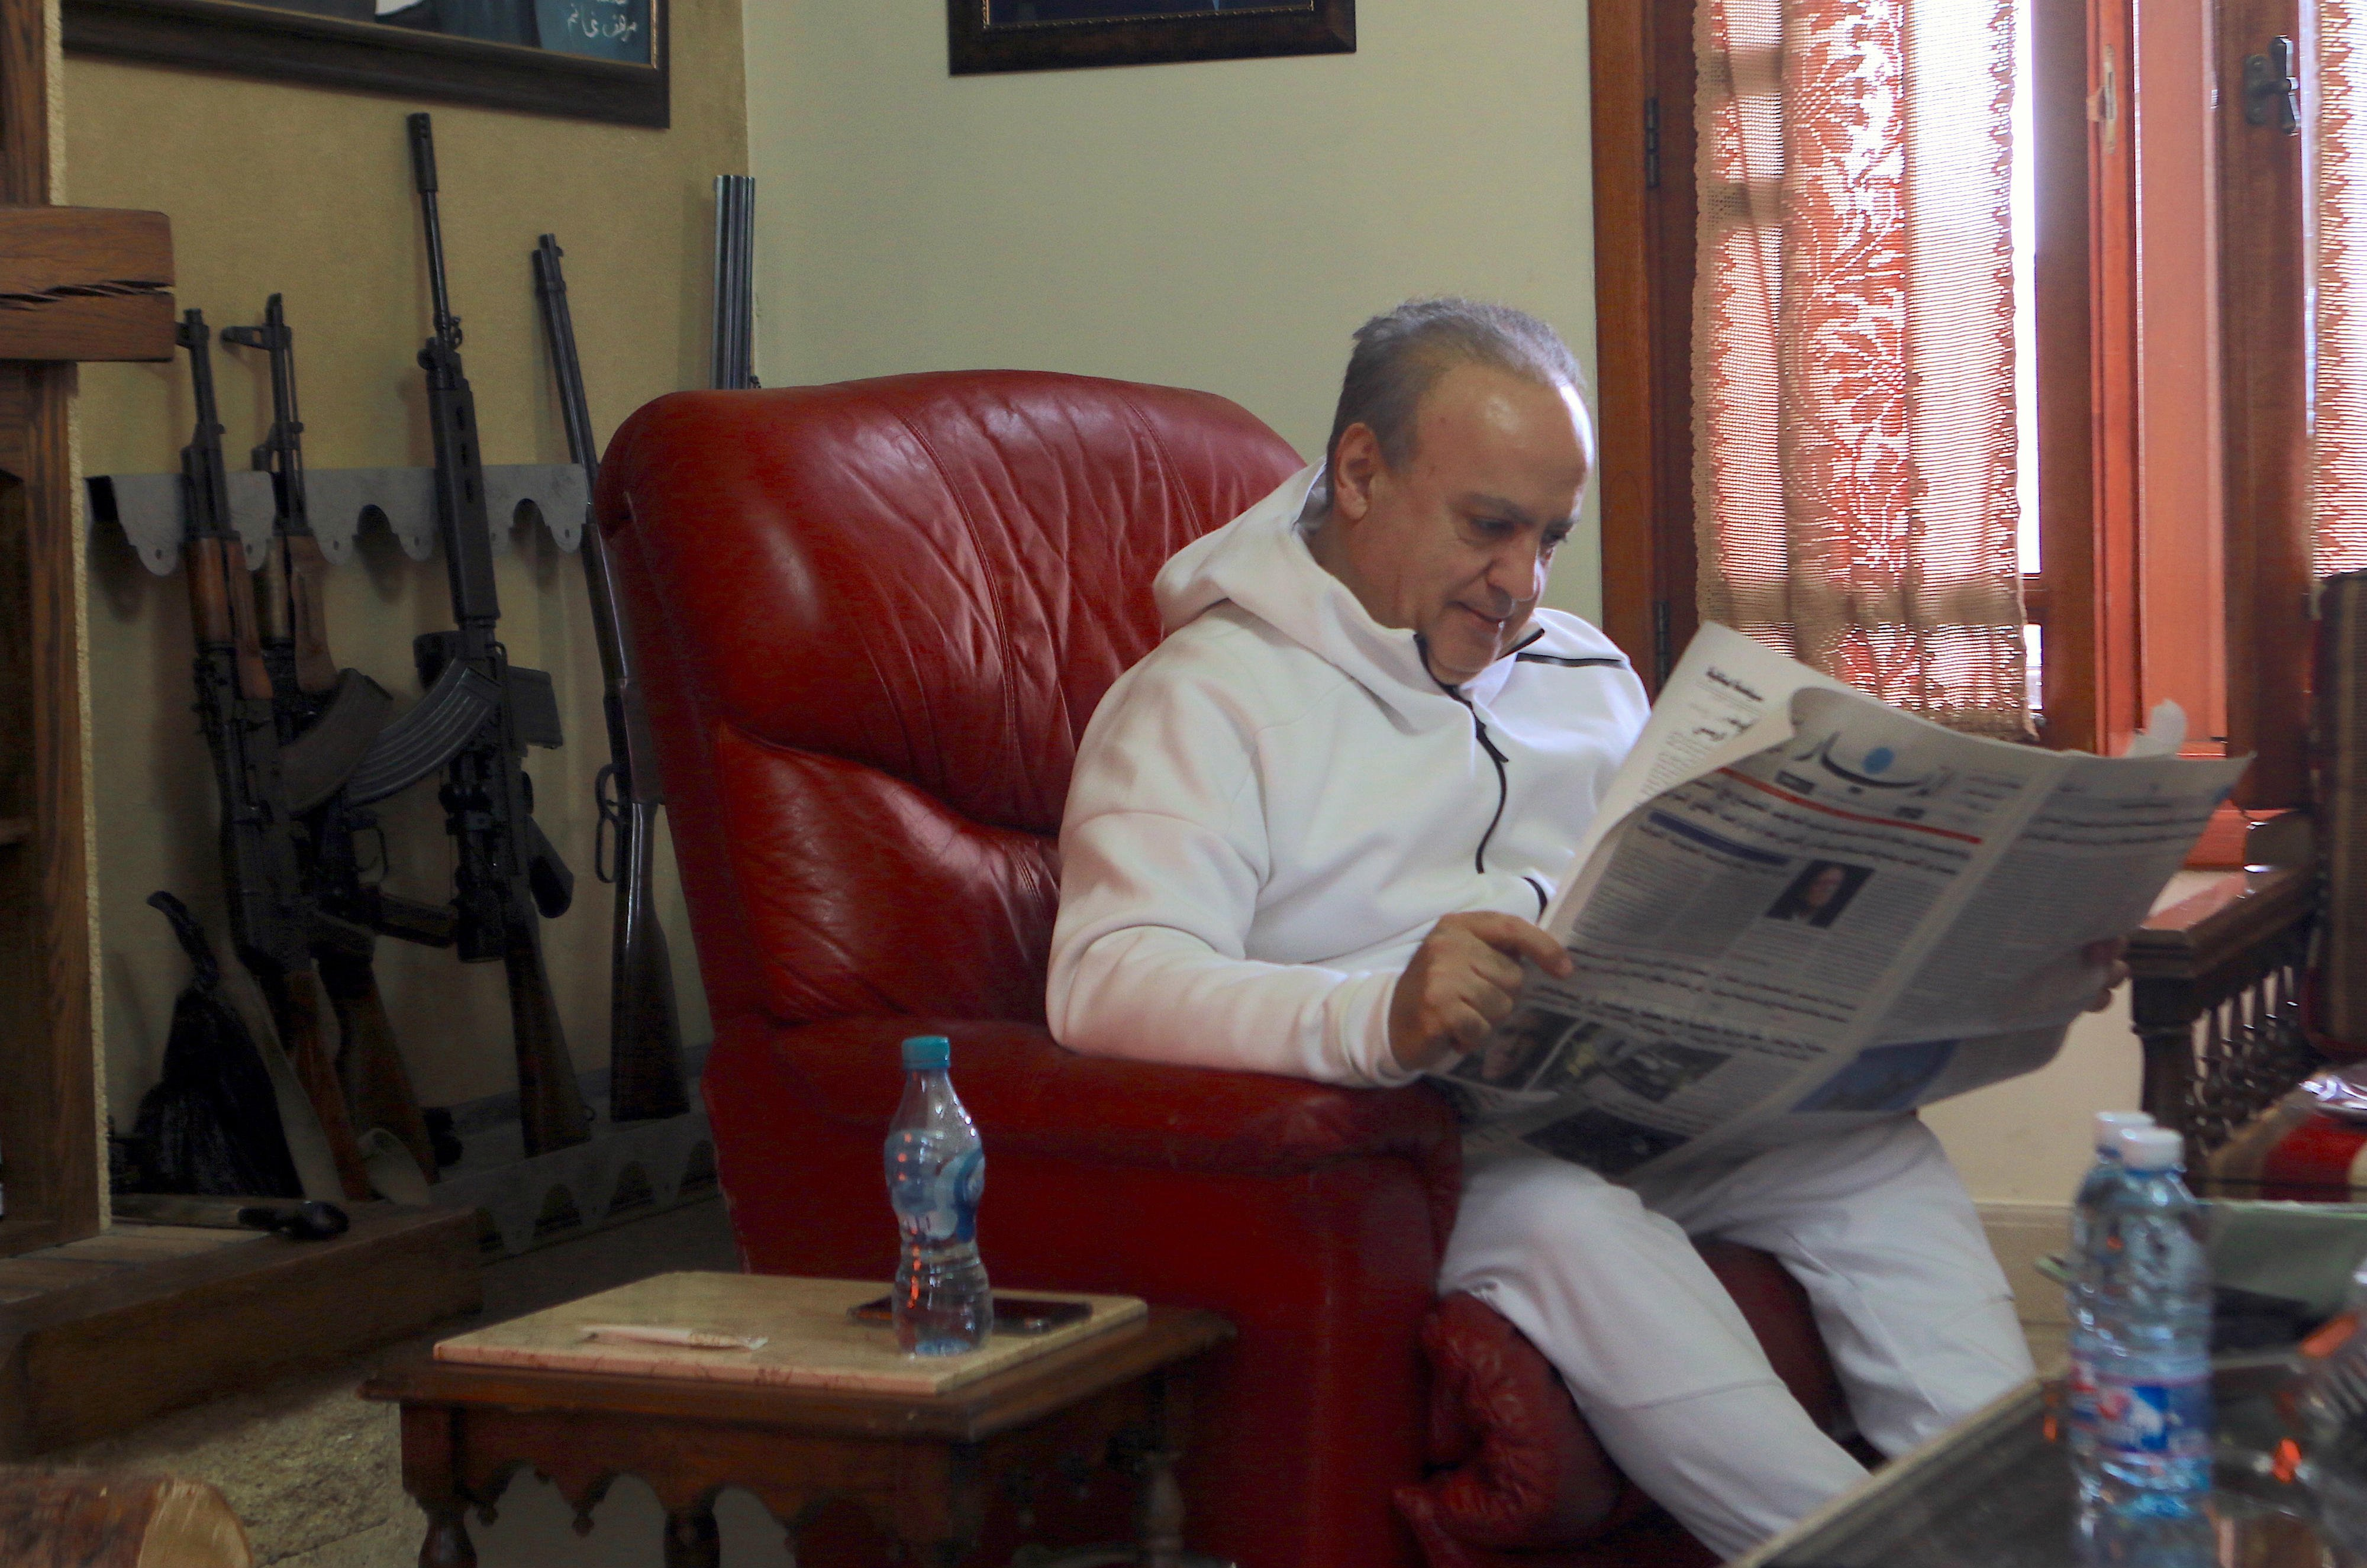 Wiam Wahhab reads a Lebanese newspaper in his home in Jahlieh (MEE/Michal Kranz)